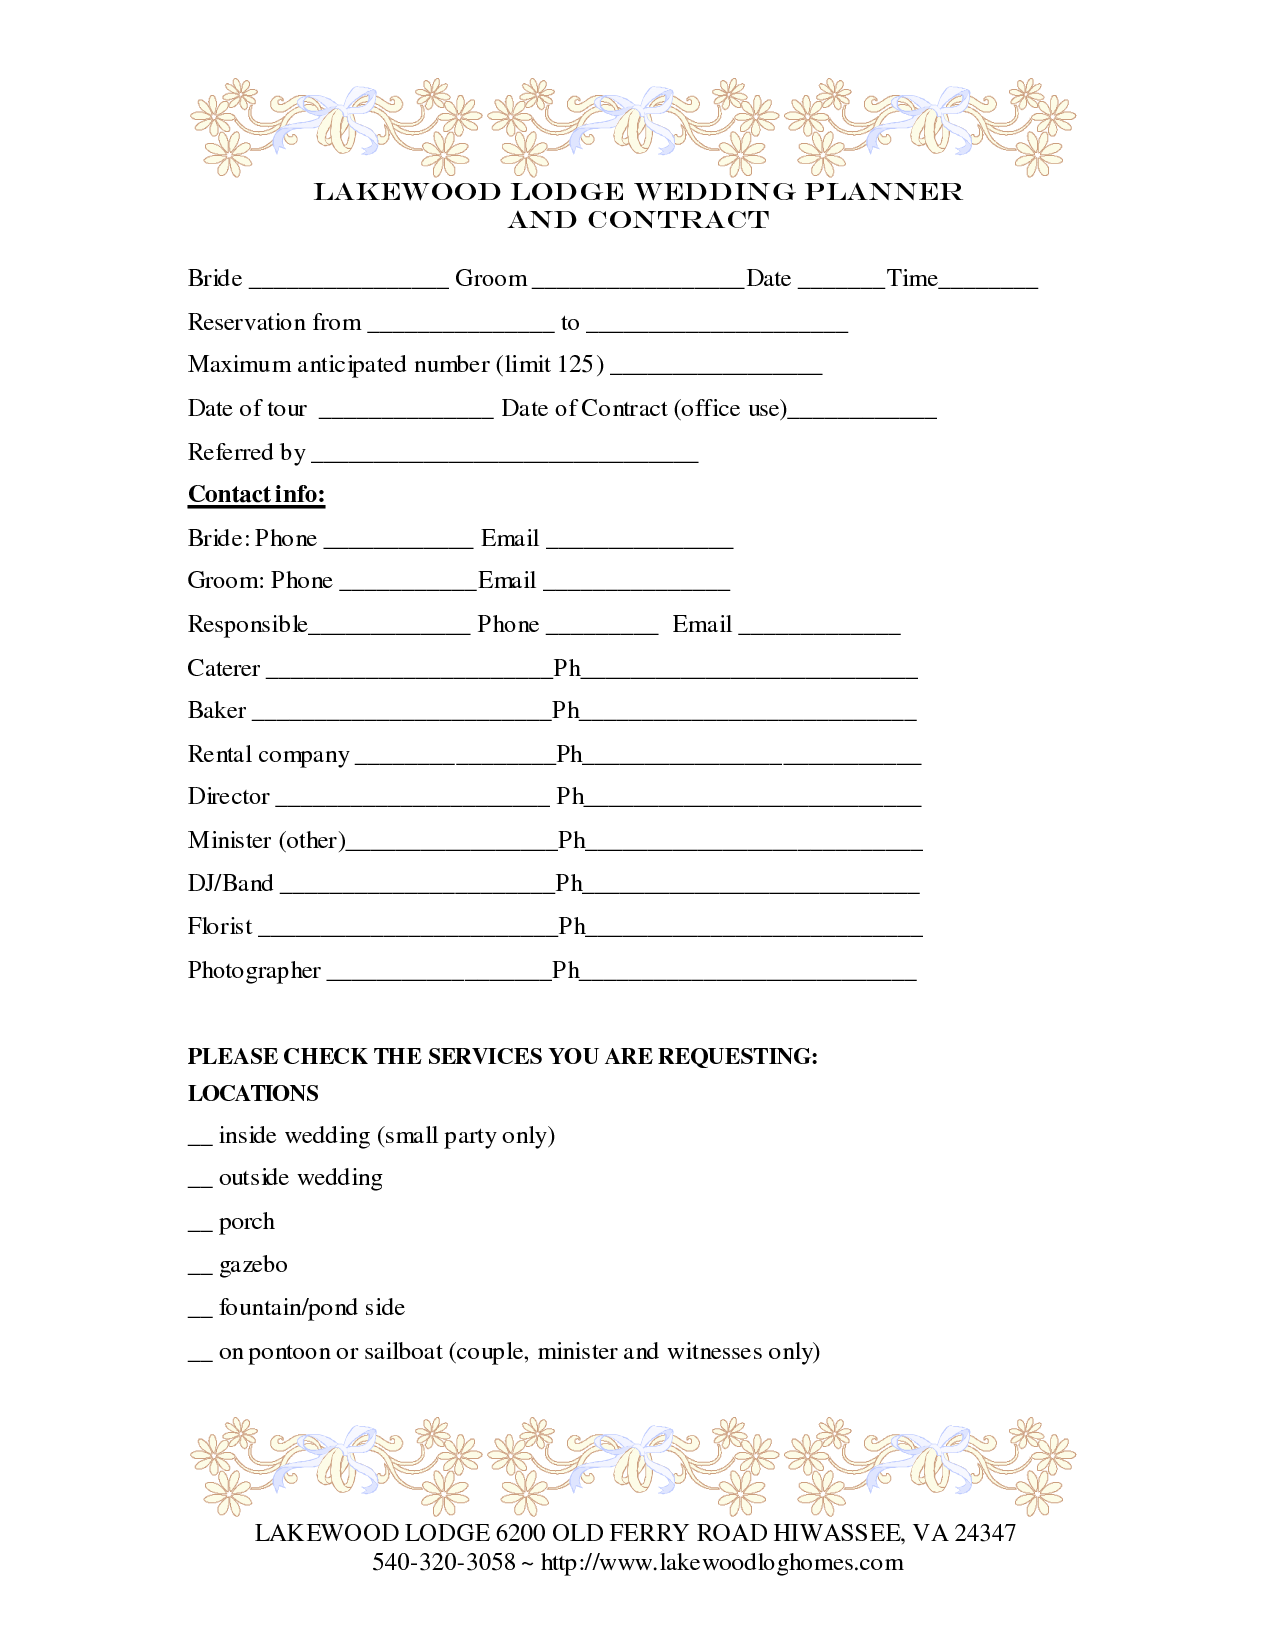 wedding contracts samples Wedding Planner Contract Template | Weddings decorations | Pinterest ...